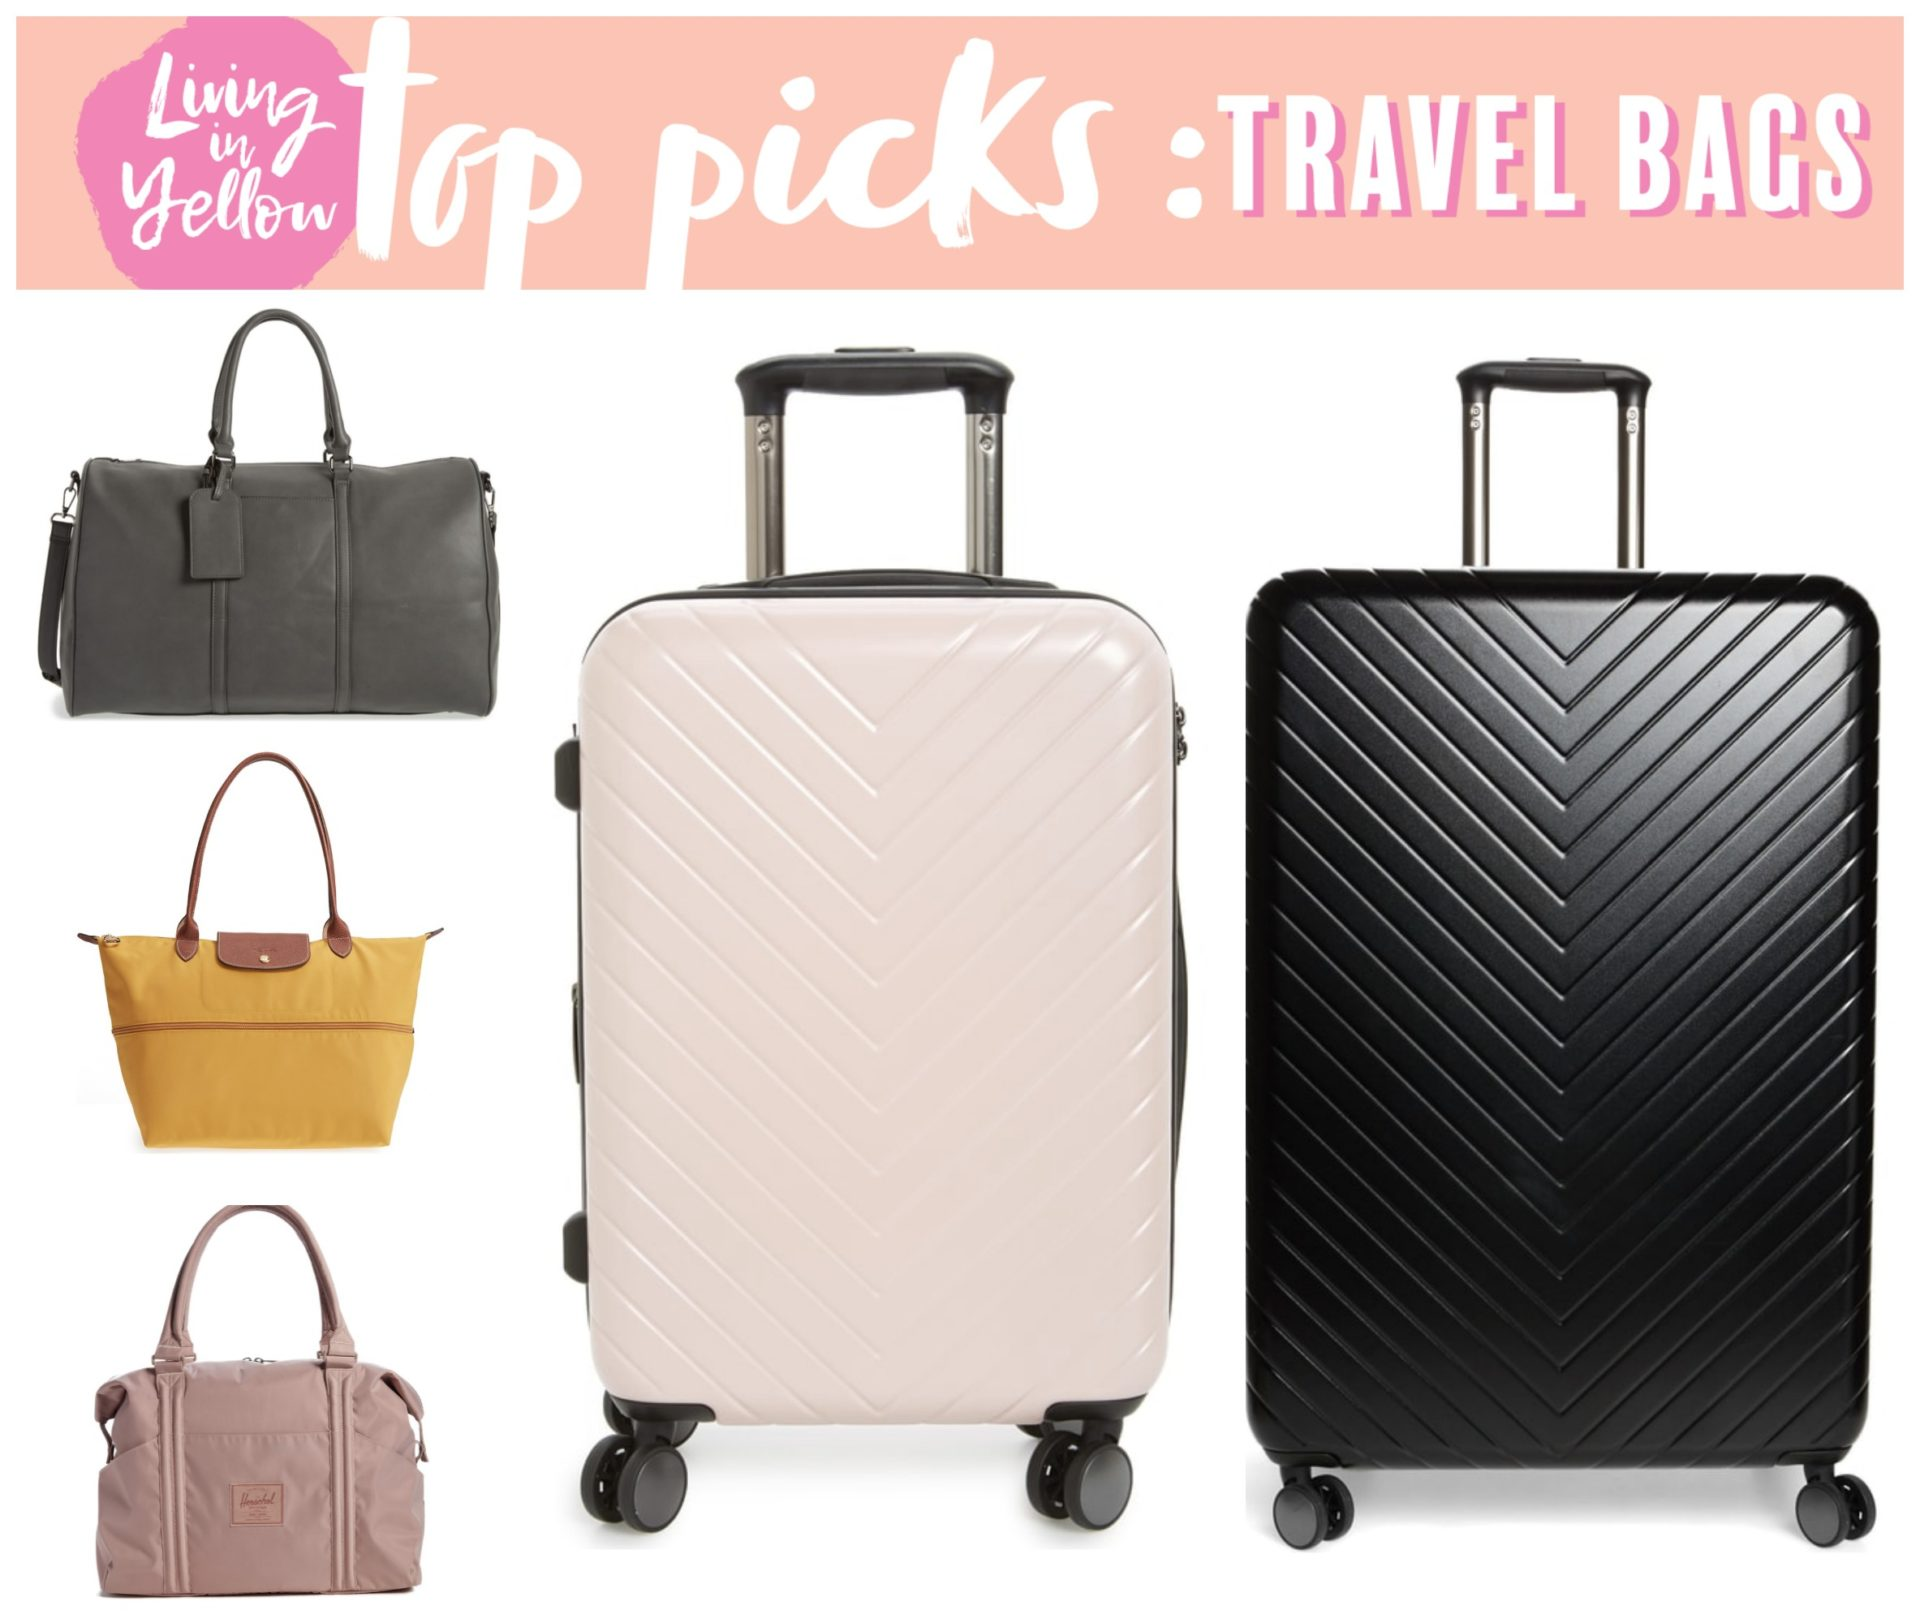 nordstrom anniversary sale travel bags